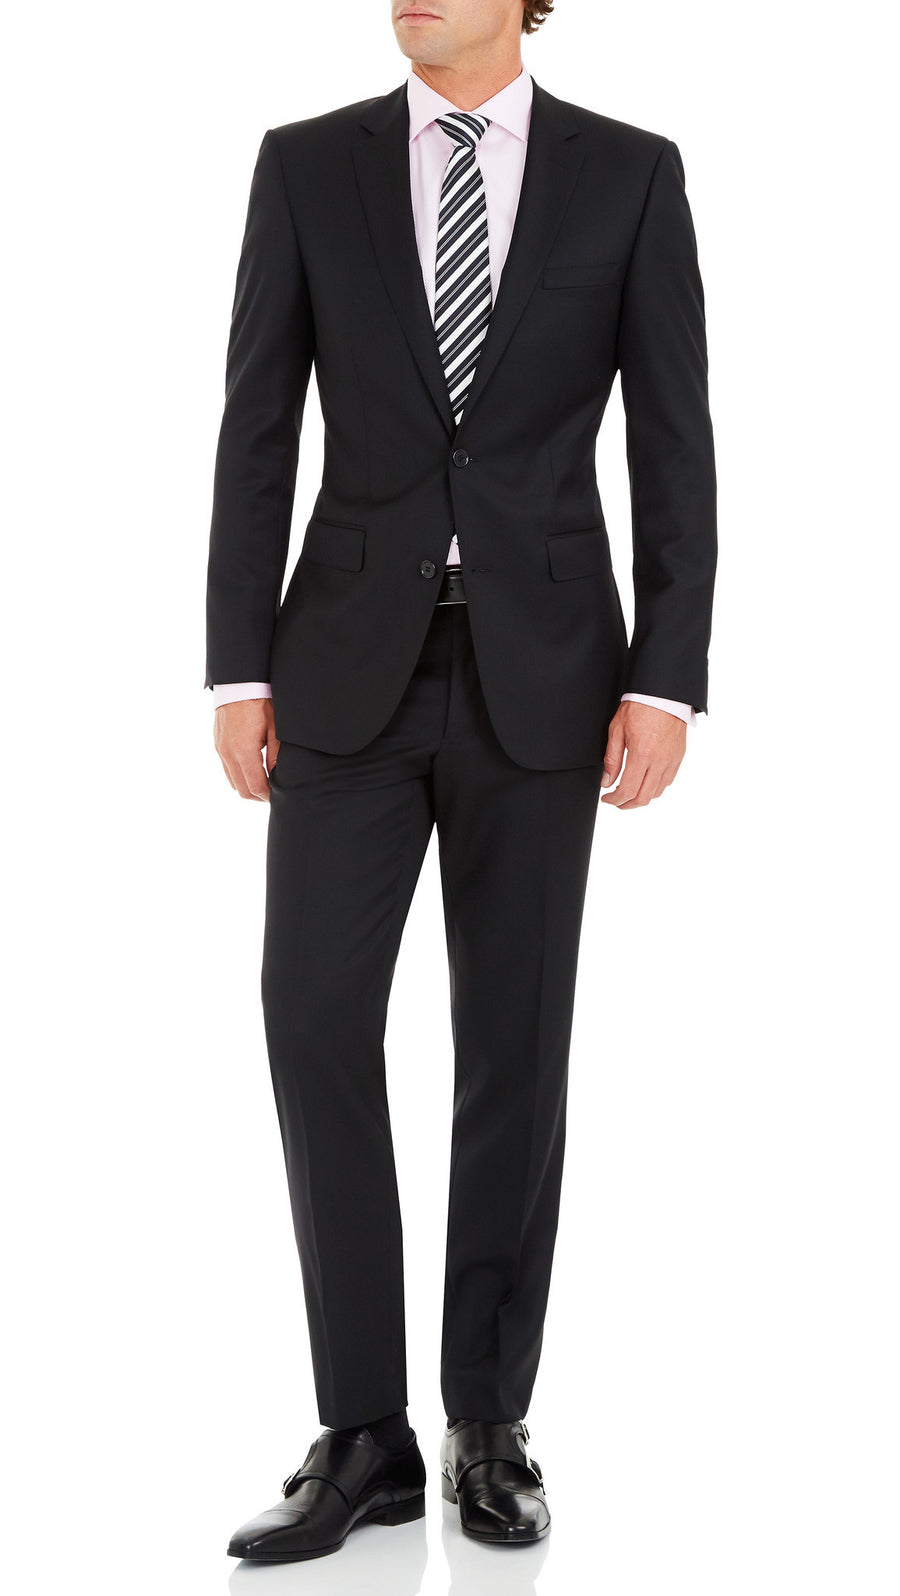 Studio Italia Icon Suit in Black - Ron Bennett Menswear  - 2